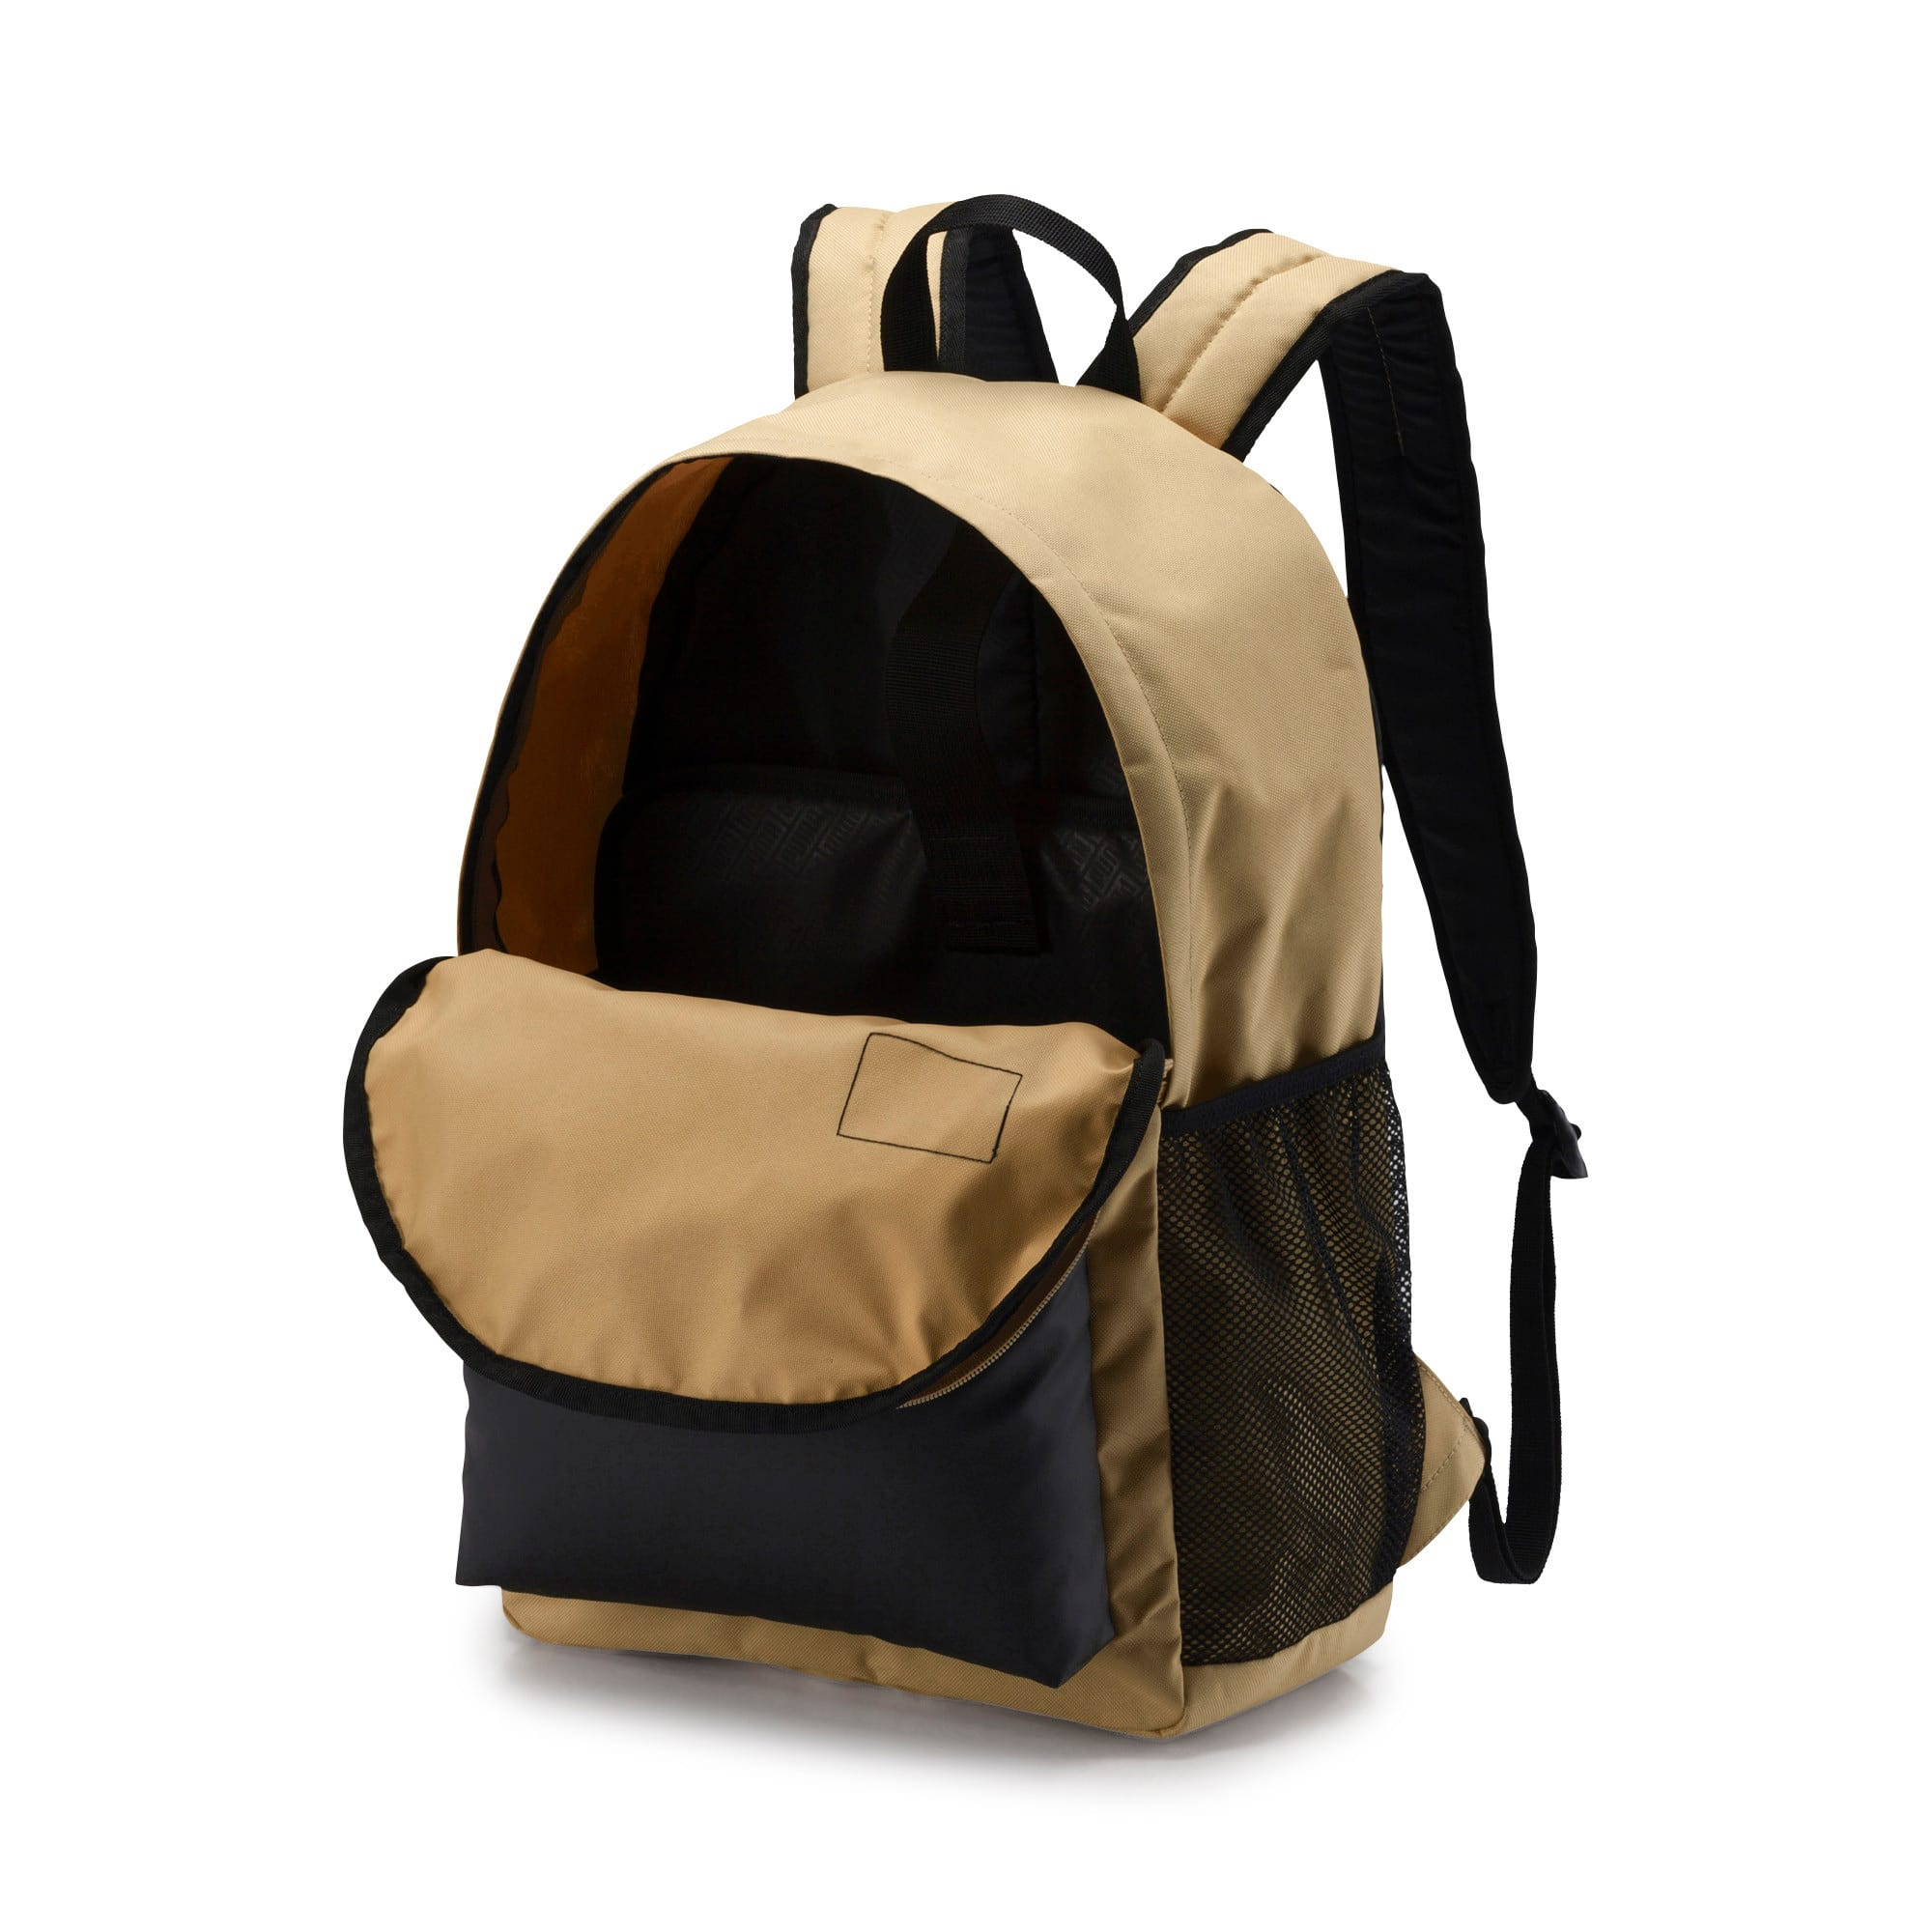 Thumbnail 3 of PUMA Academy Backpack, Taos Taupe, medium